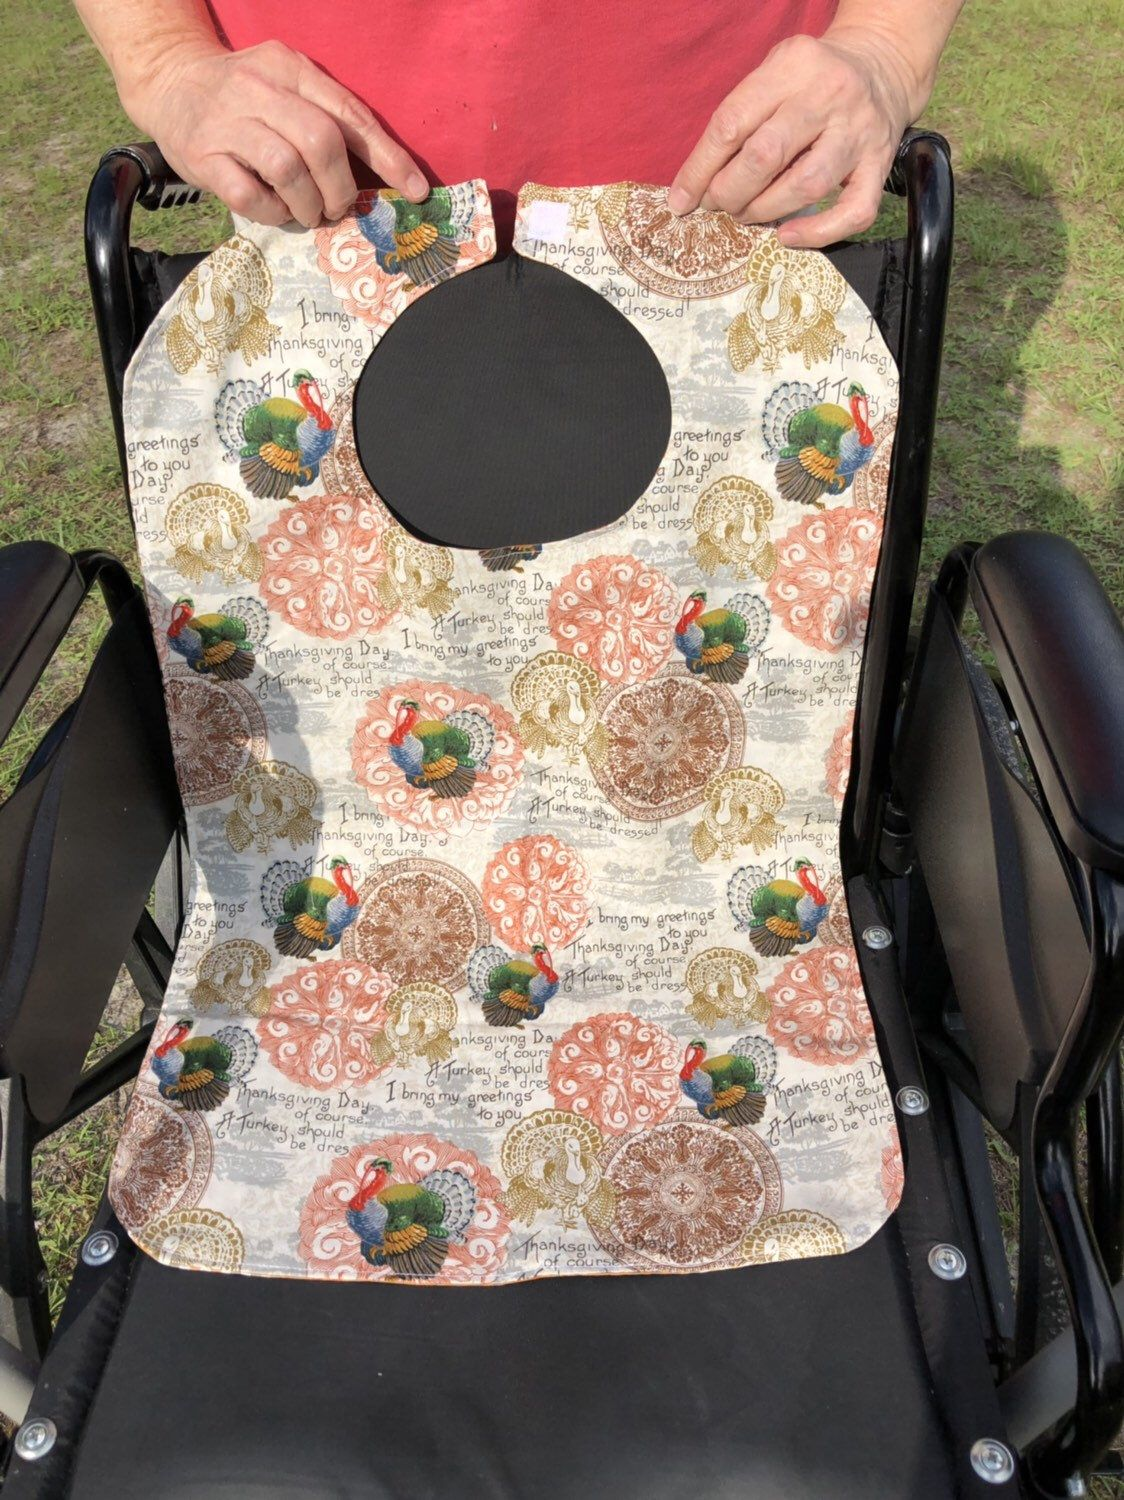 Alzheimer/'s gift or mature bib gift for mom or dad. Wine glass Adult dignity bib is a great nursing home gift or special needs gift